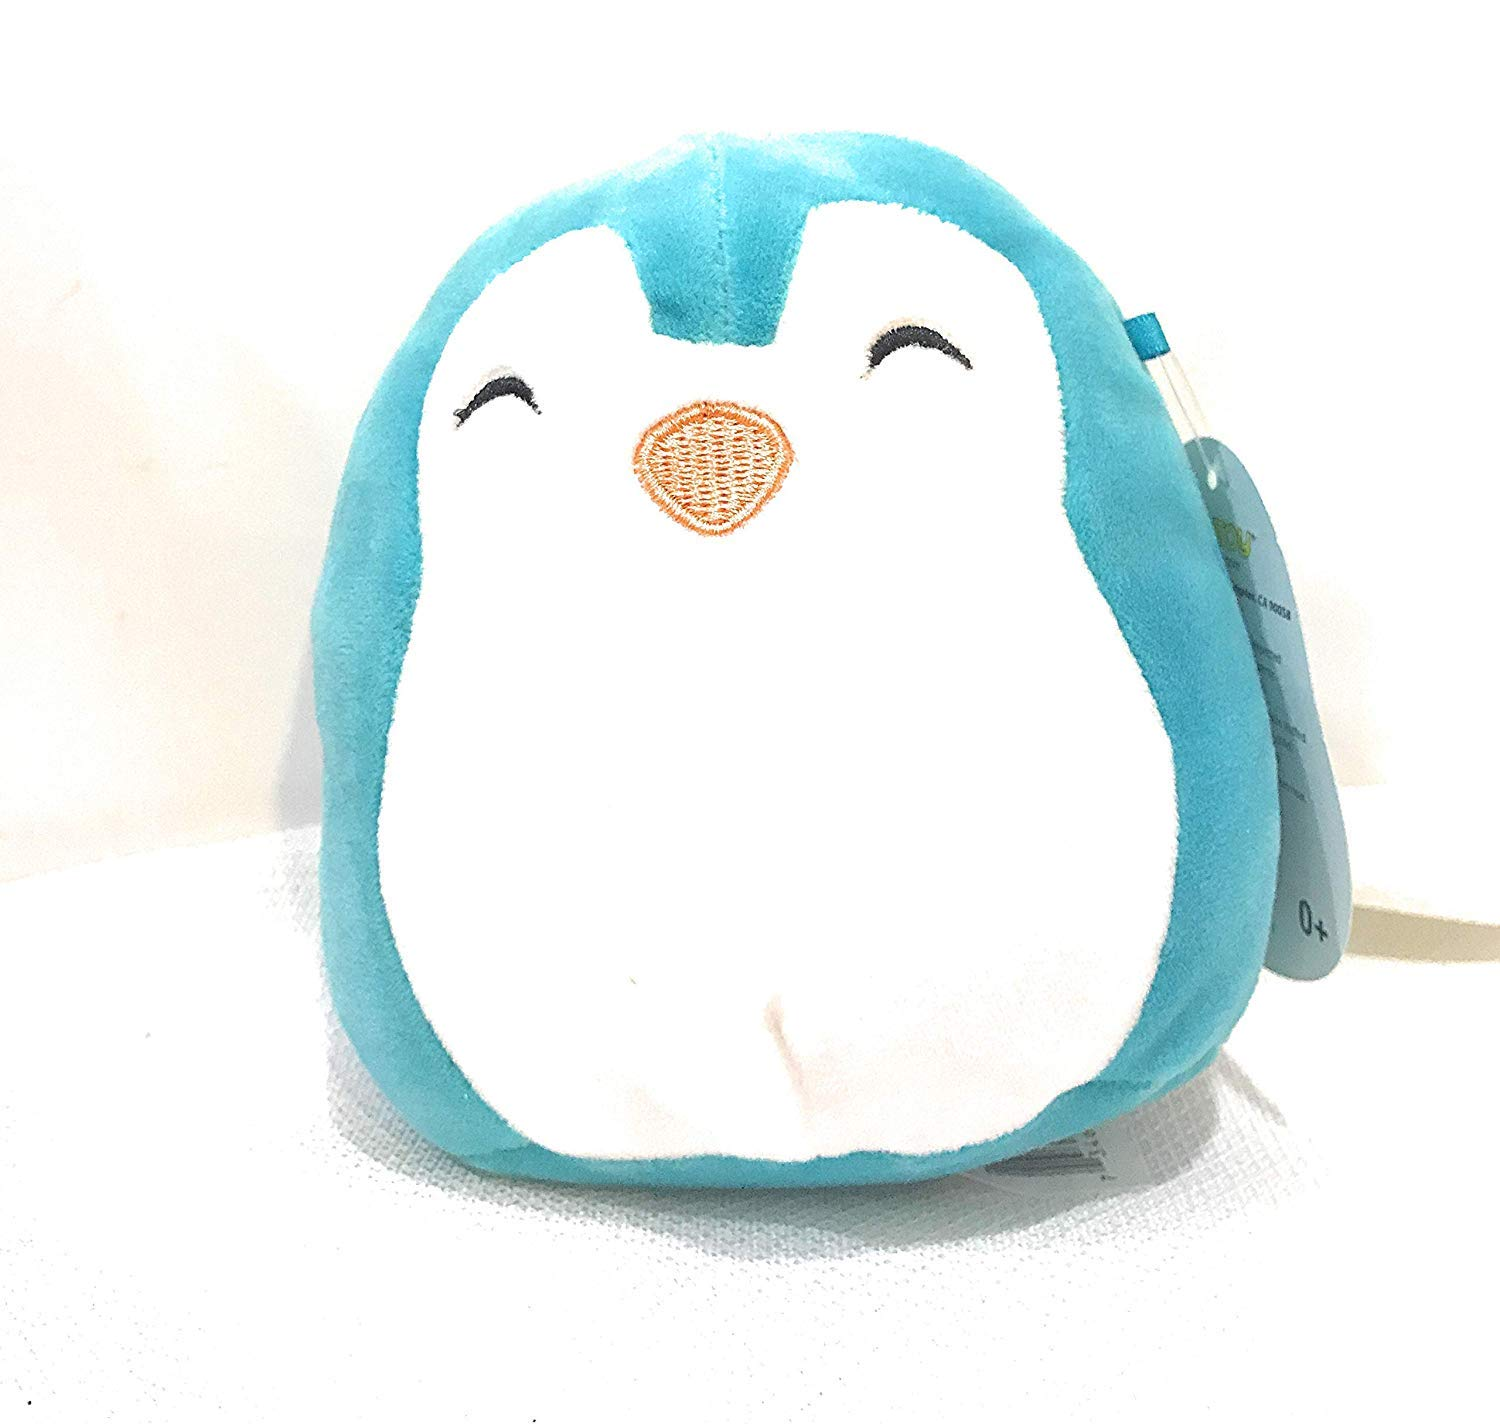 Squishmallow Original Kellytoy Teal Penguin Tanner  16'' Super Soft Plush Toy Stuffed Animal Pet Pillow Gift by Kelly Toy